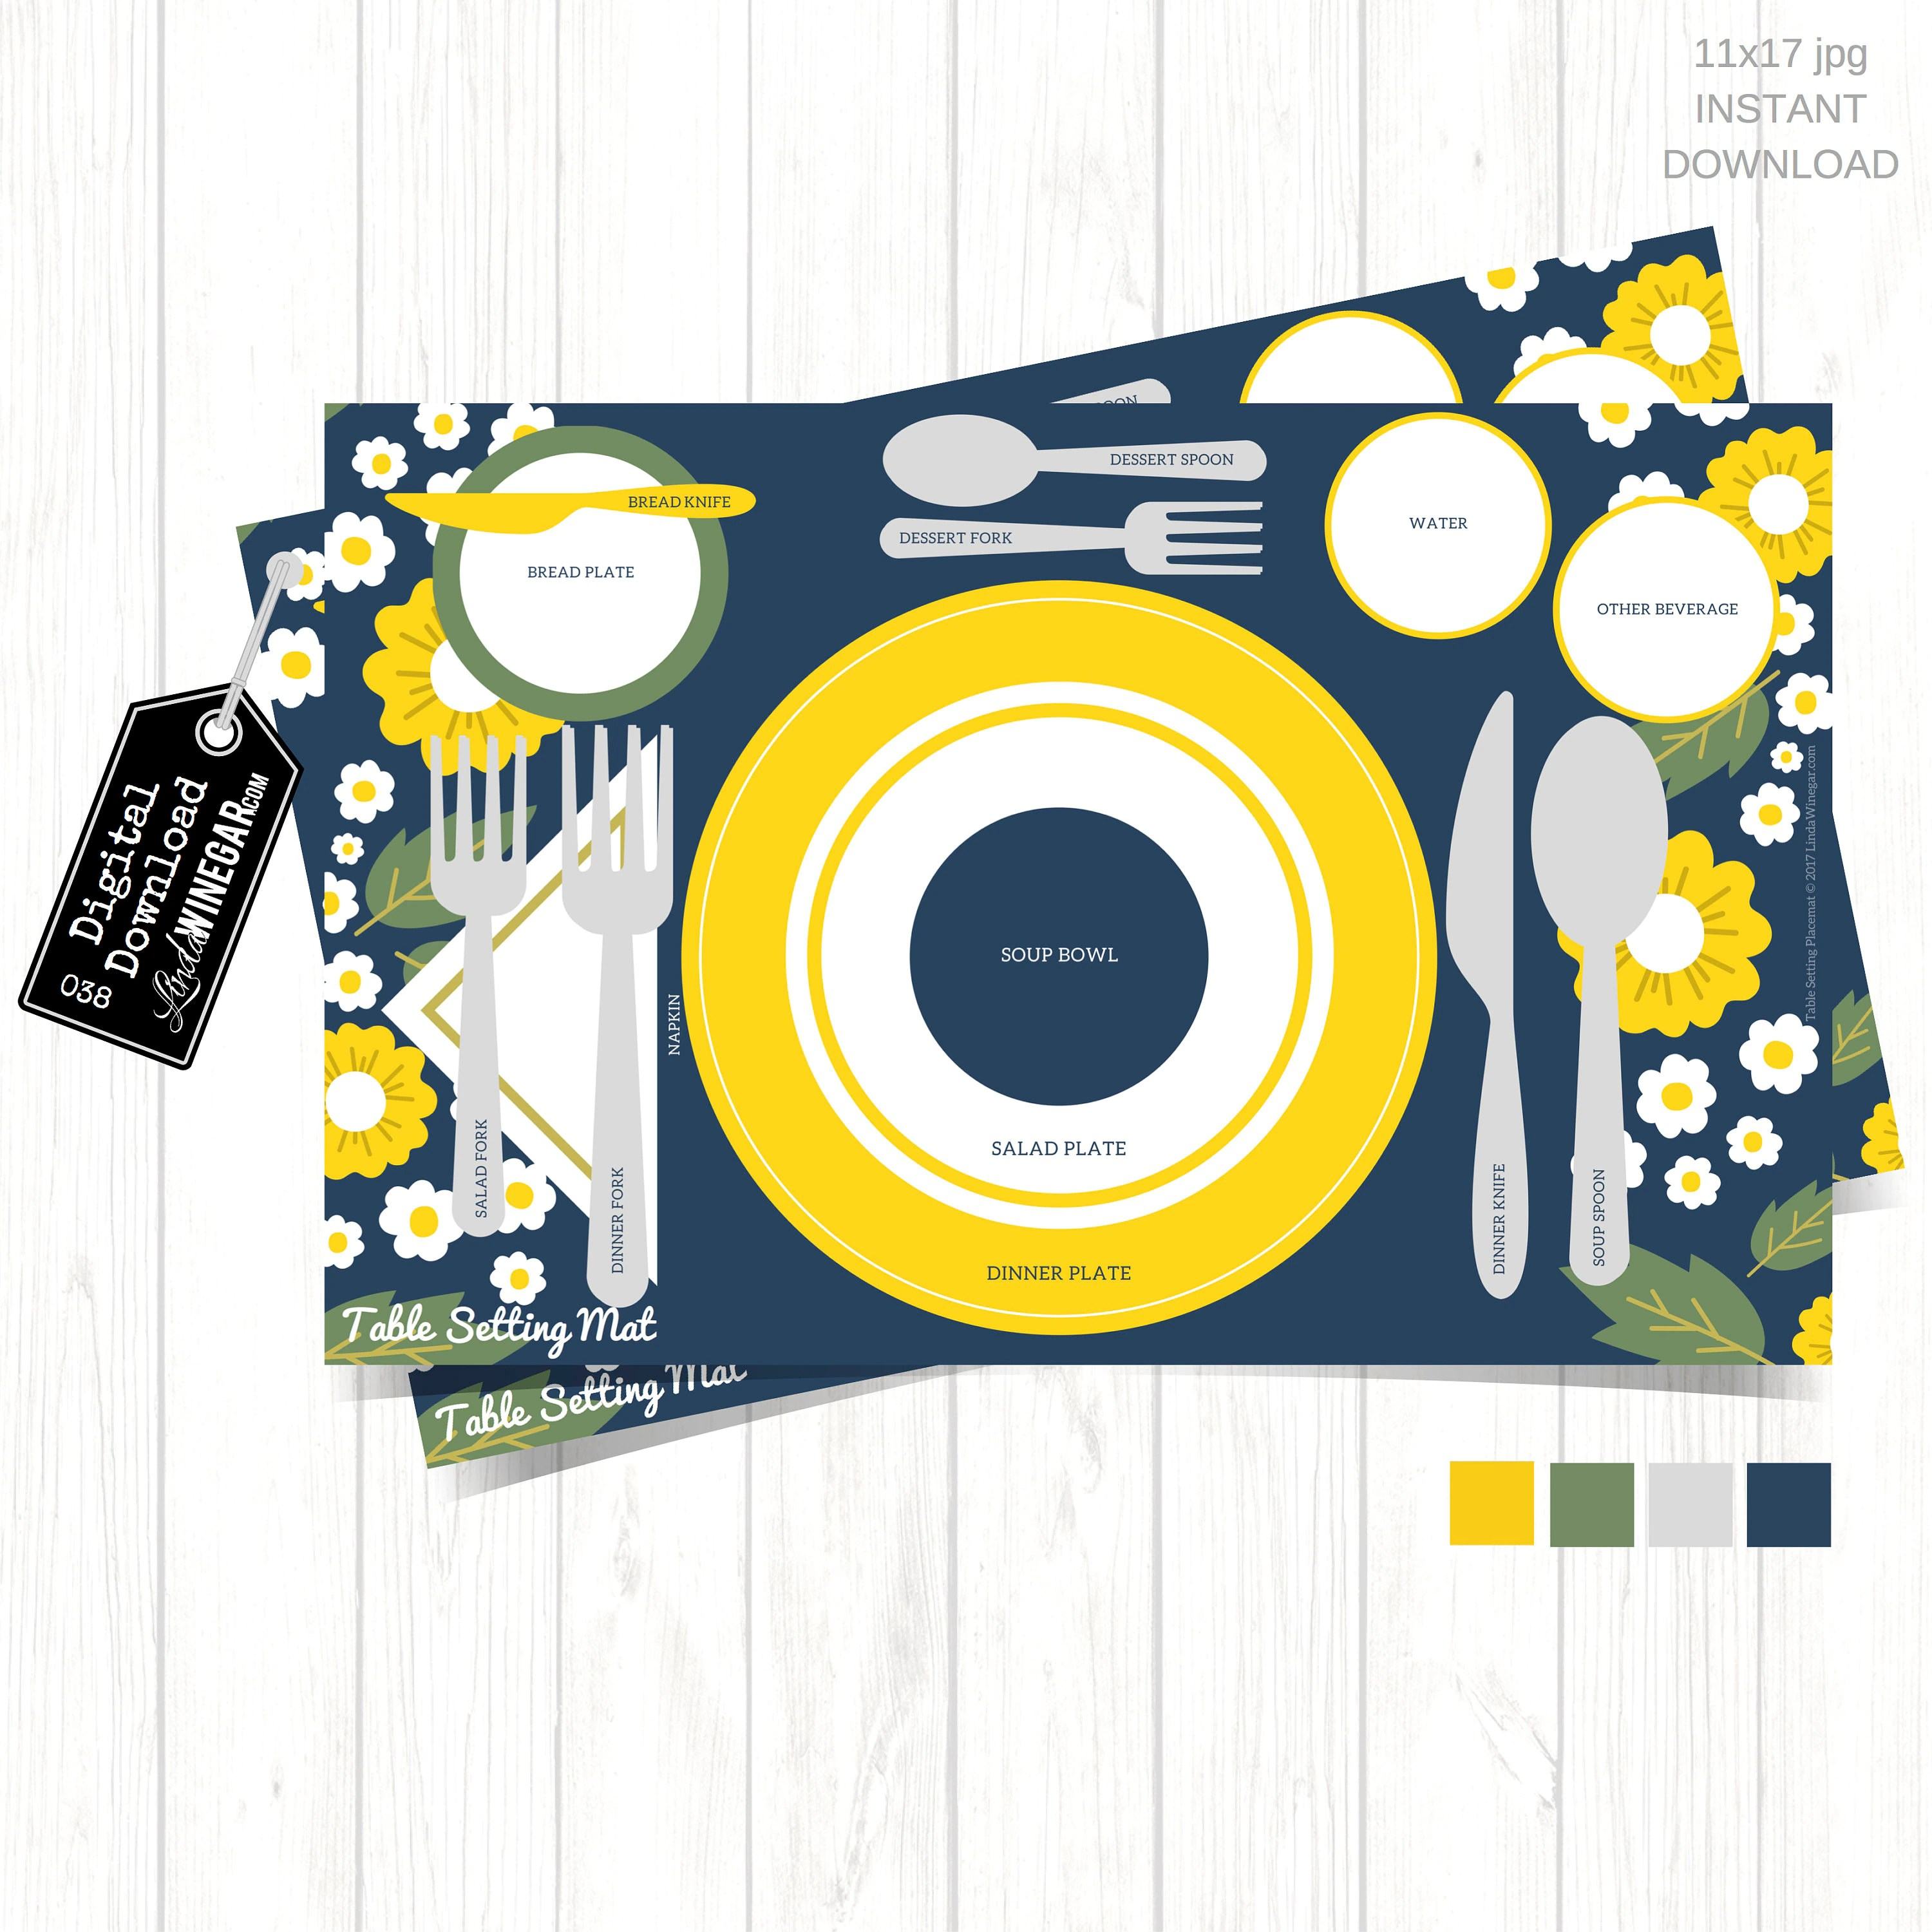 Etiquette Placemat For Kids Table Setting Diagram For